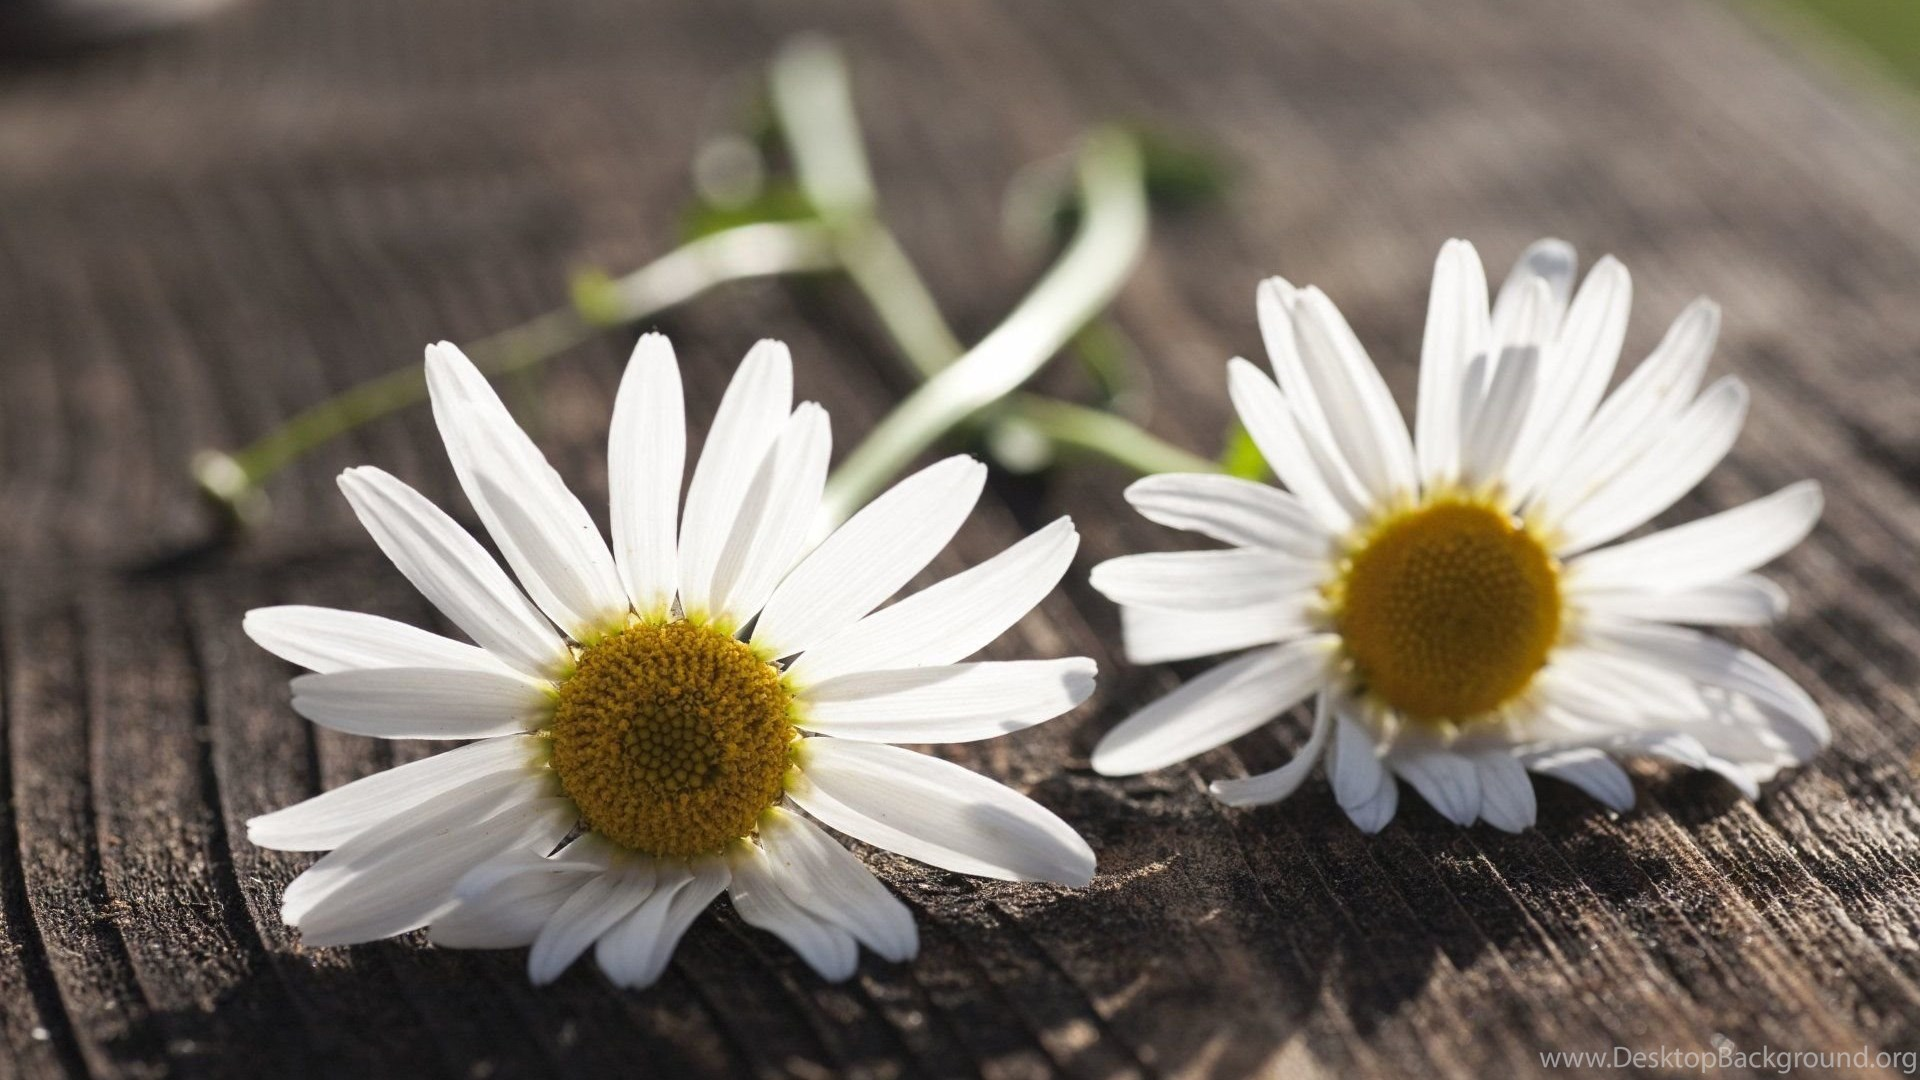 Flower Flowers Daisy Chamomile White Flower Backgrounds Wallpapers